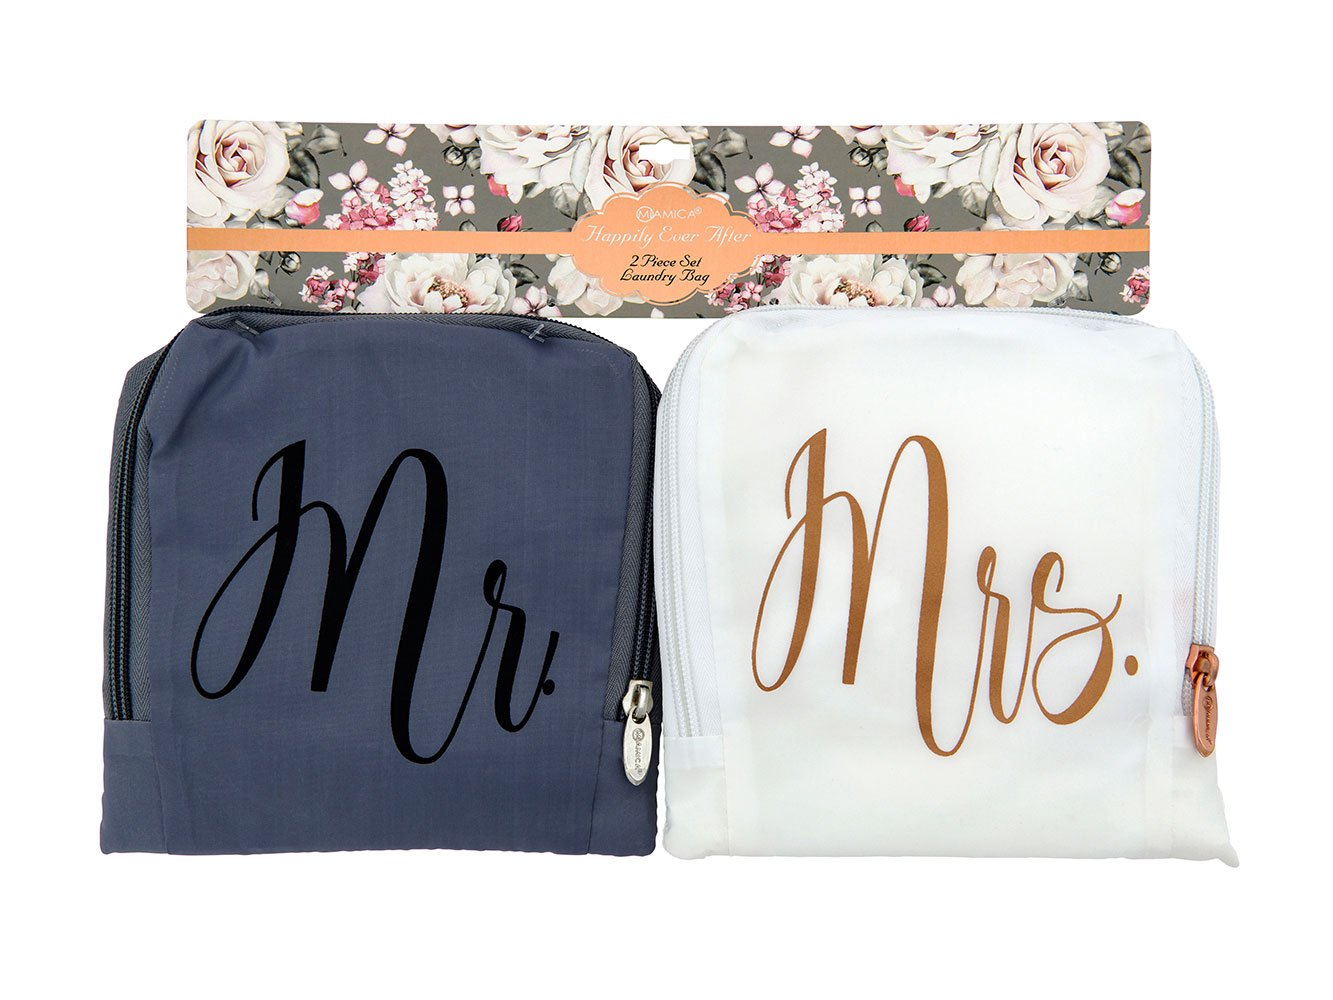 Miamica Mr. and Mrs. Bridal Travel Laundry Bag, Gray and White